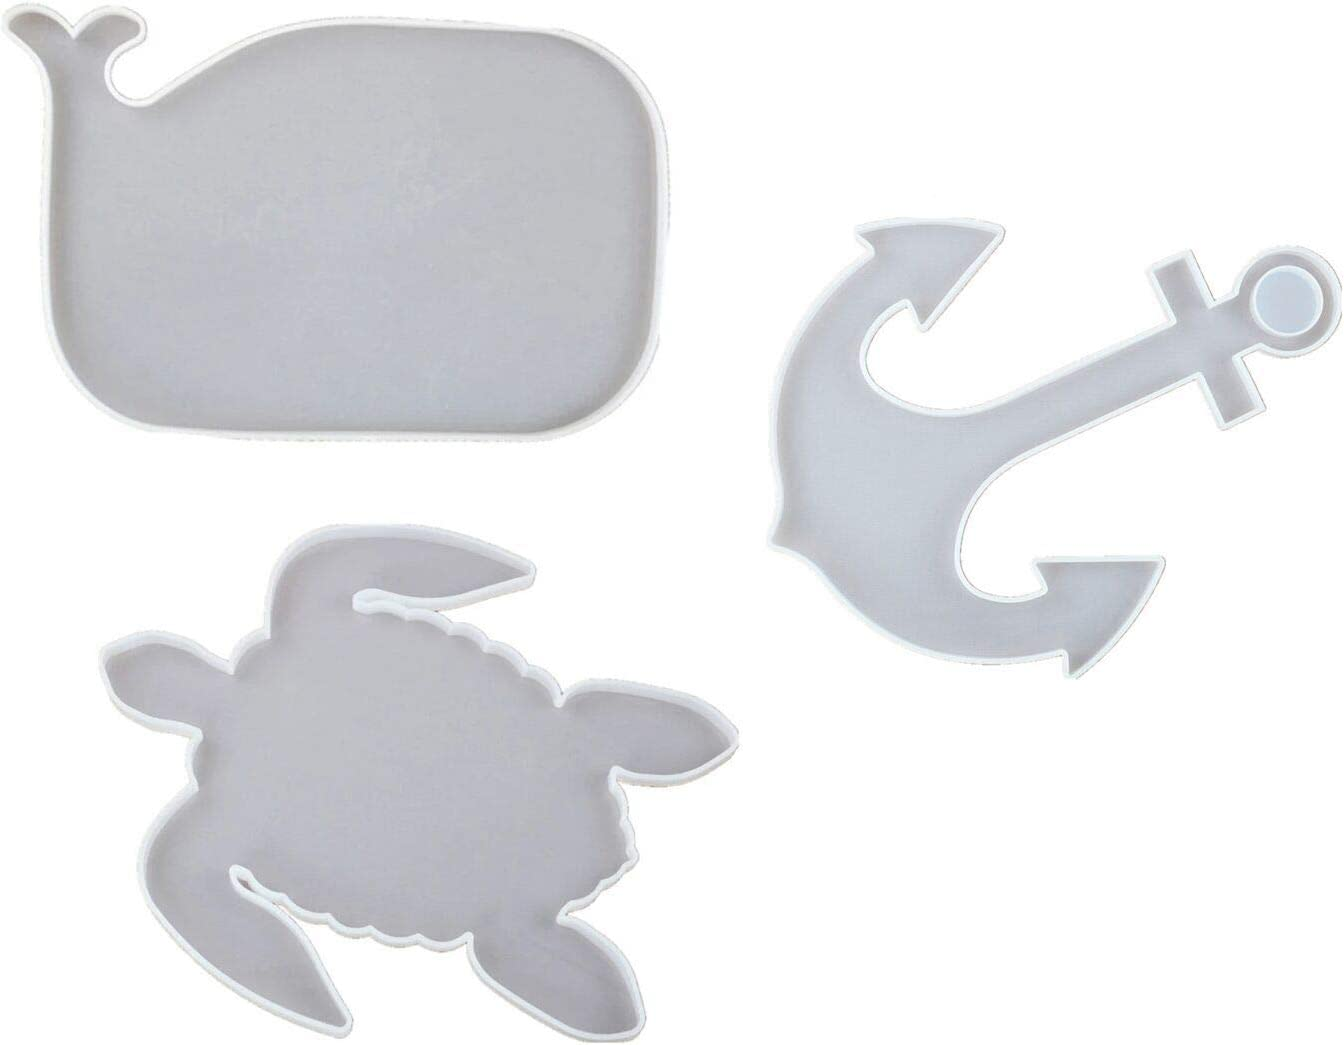 Yalulu Industry No. 1 3 Packs Silicone Resin Tray Anchor G Whale Mold Ranking TOP5 Turtle